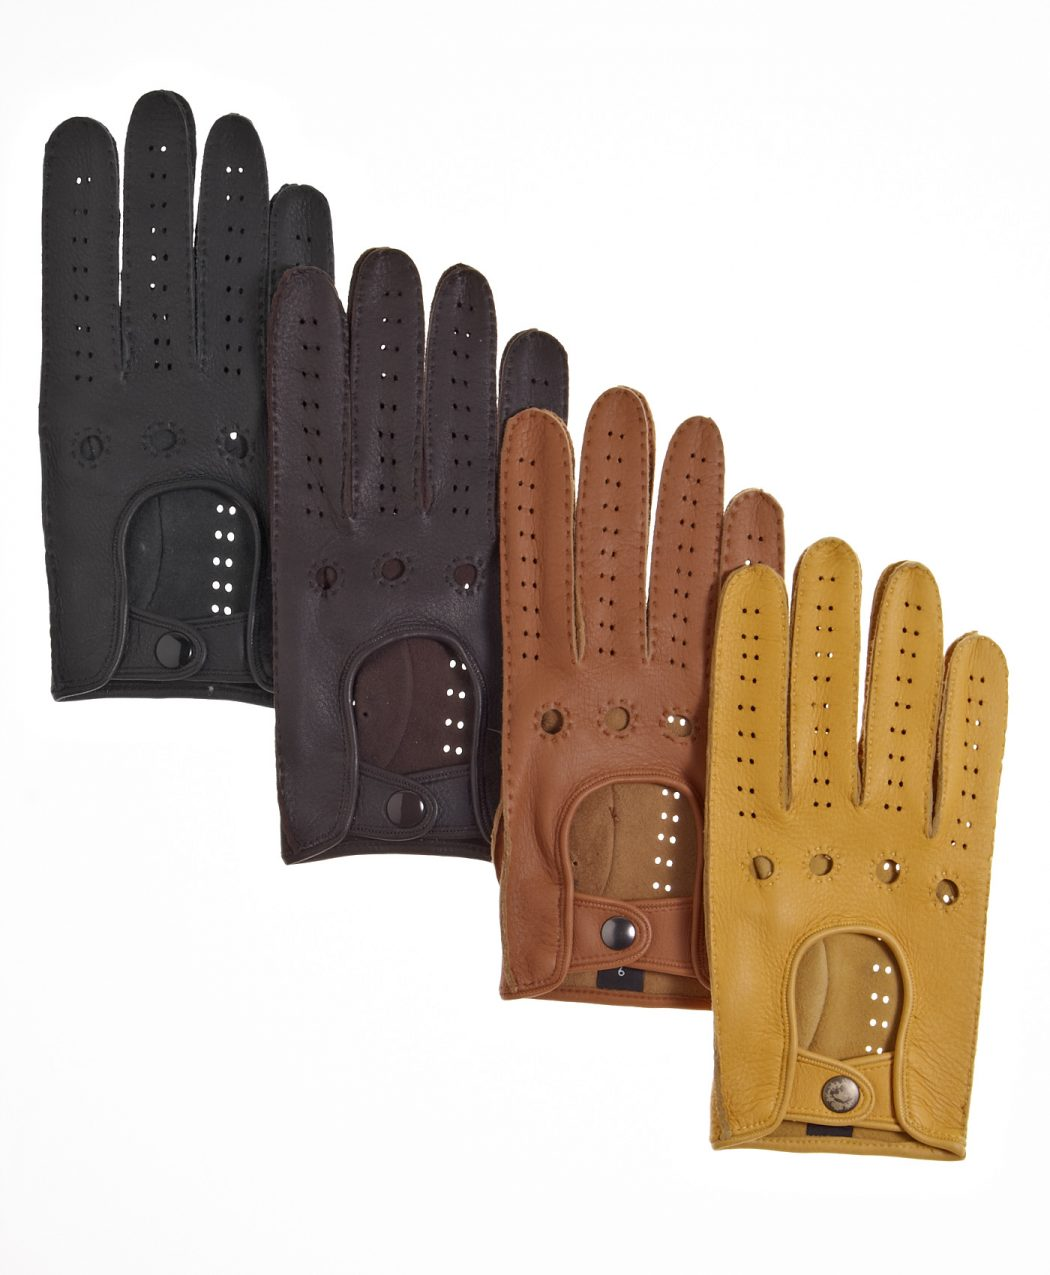 colrs. Most Stylish Gloves for Men